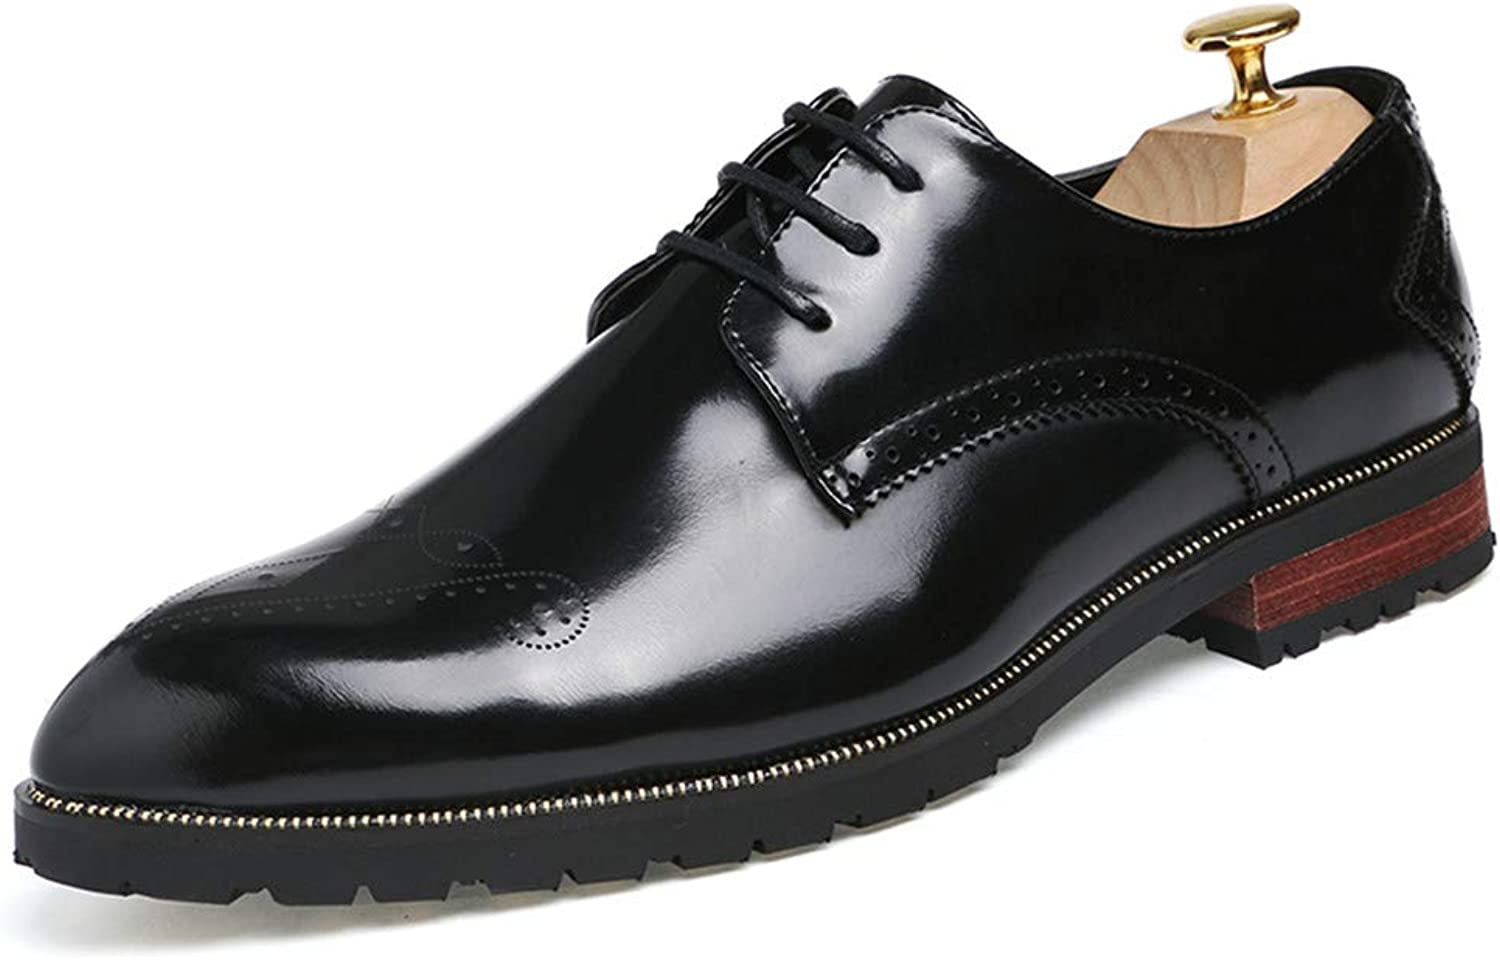 Z.L.F shoes Men's Business Oxford Personality Fashion Trend Pointed Carved Antique Patent Leather Brogue shoes Leather shoes